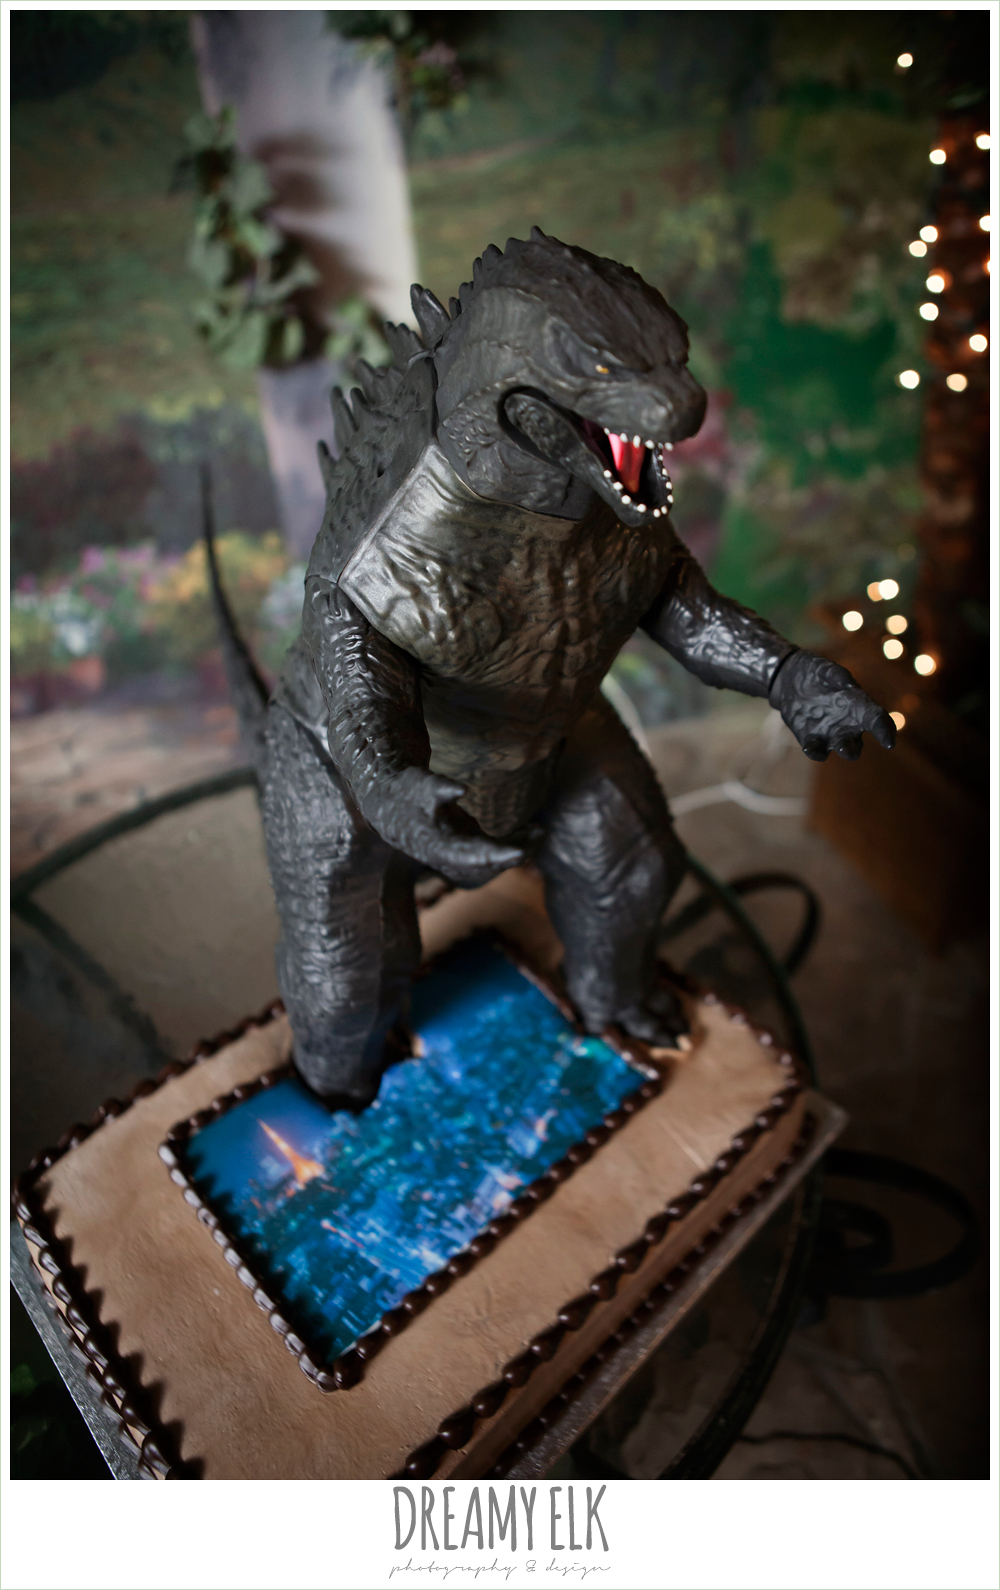 godzilla groom's cake, groom in gray suit, pool tie, off the shoulder mermaid wedding dress, le jardin winter wedding {dreamy elk photography and design}